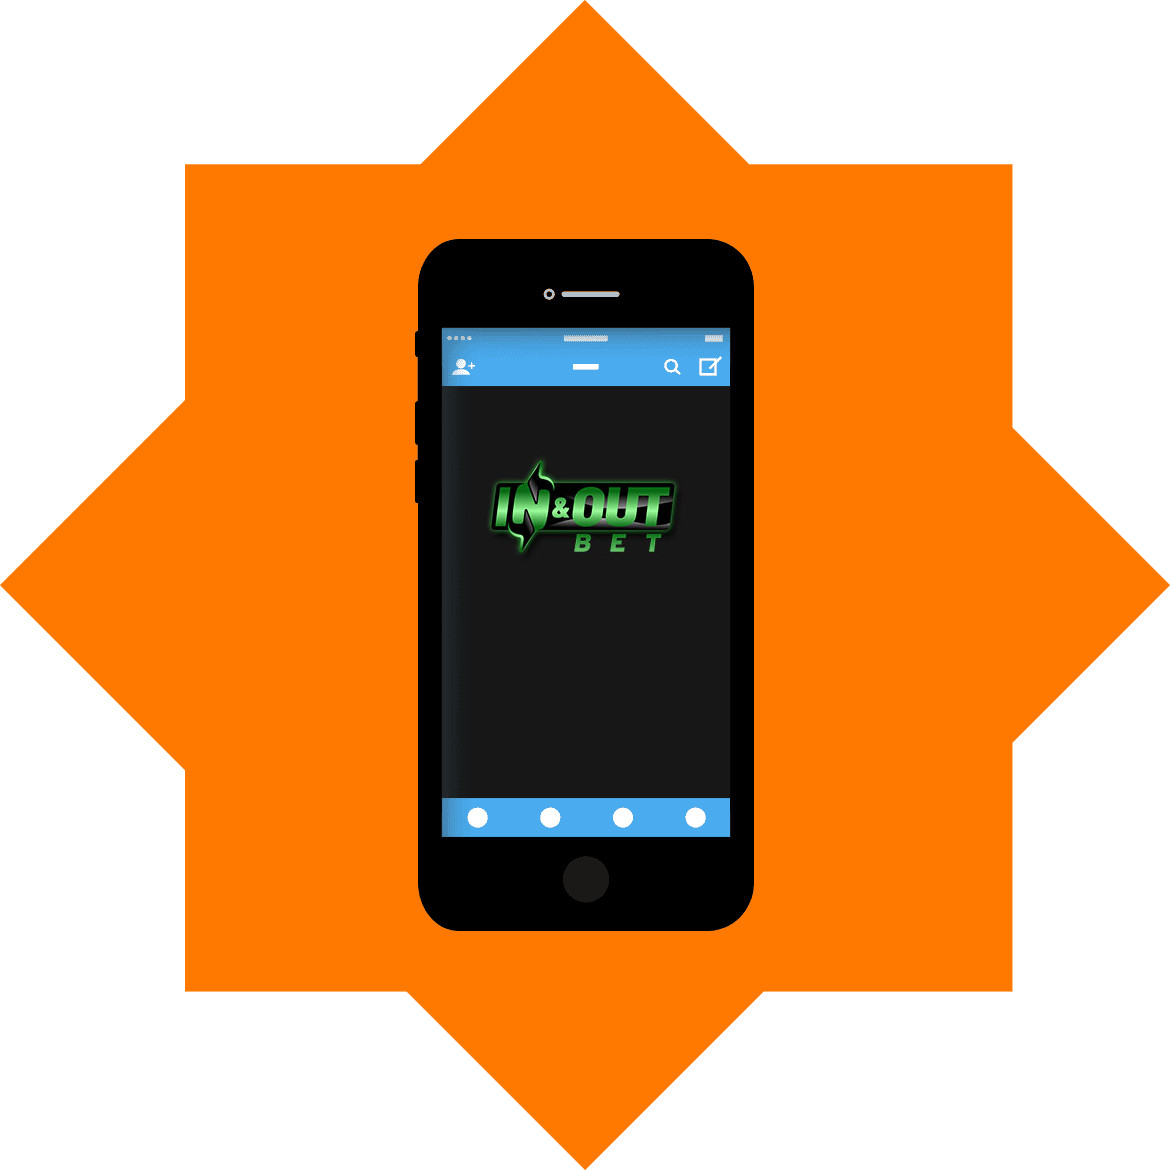 InandOutBet - Mobile friendly